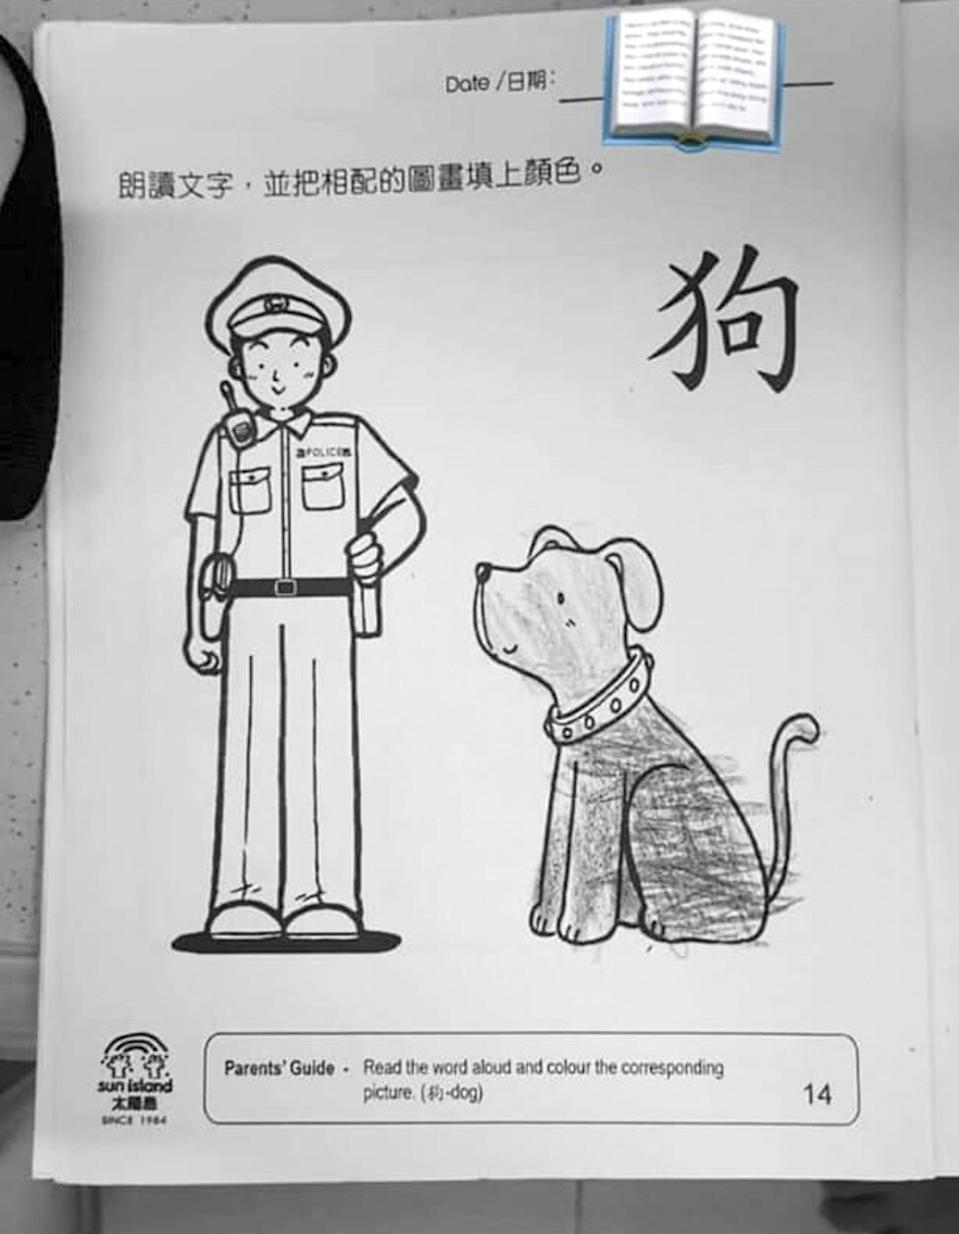 The worksheet depicting a policeman and a dog that sparked complaints online. Photo: Facebook